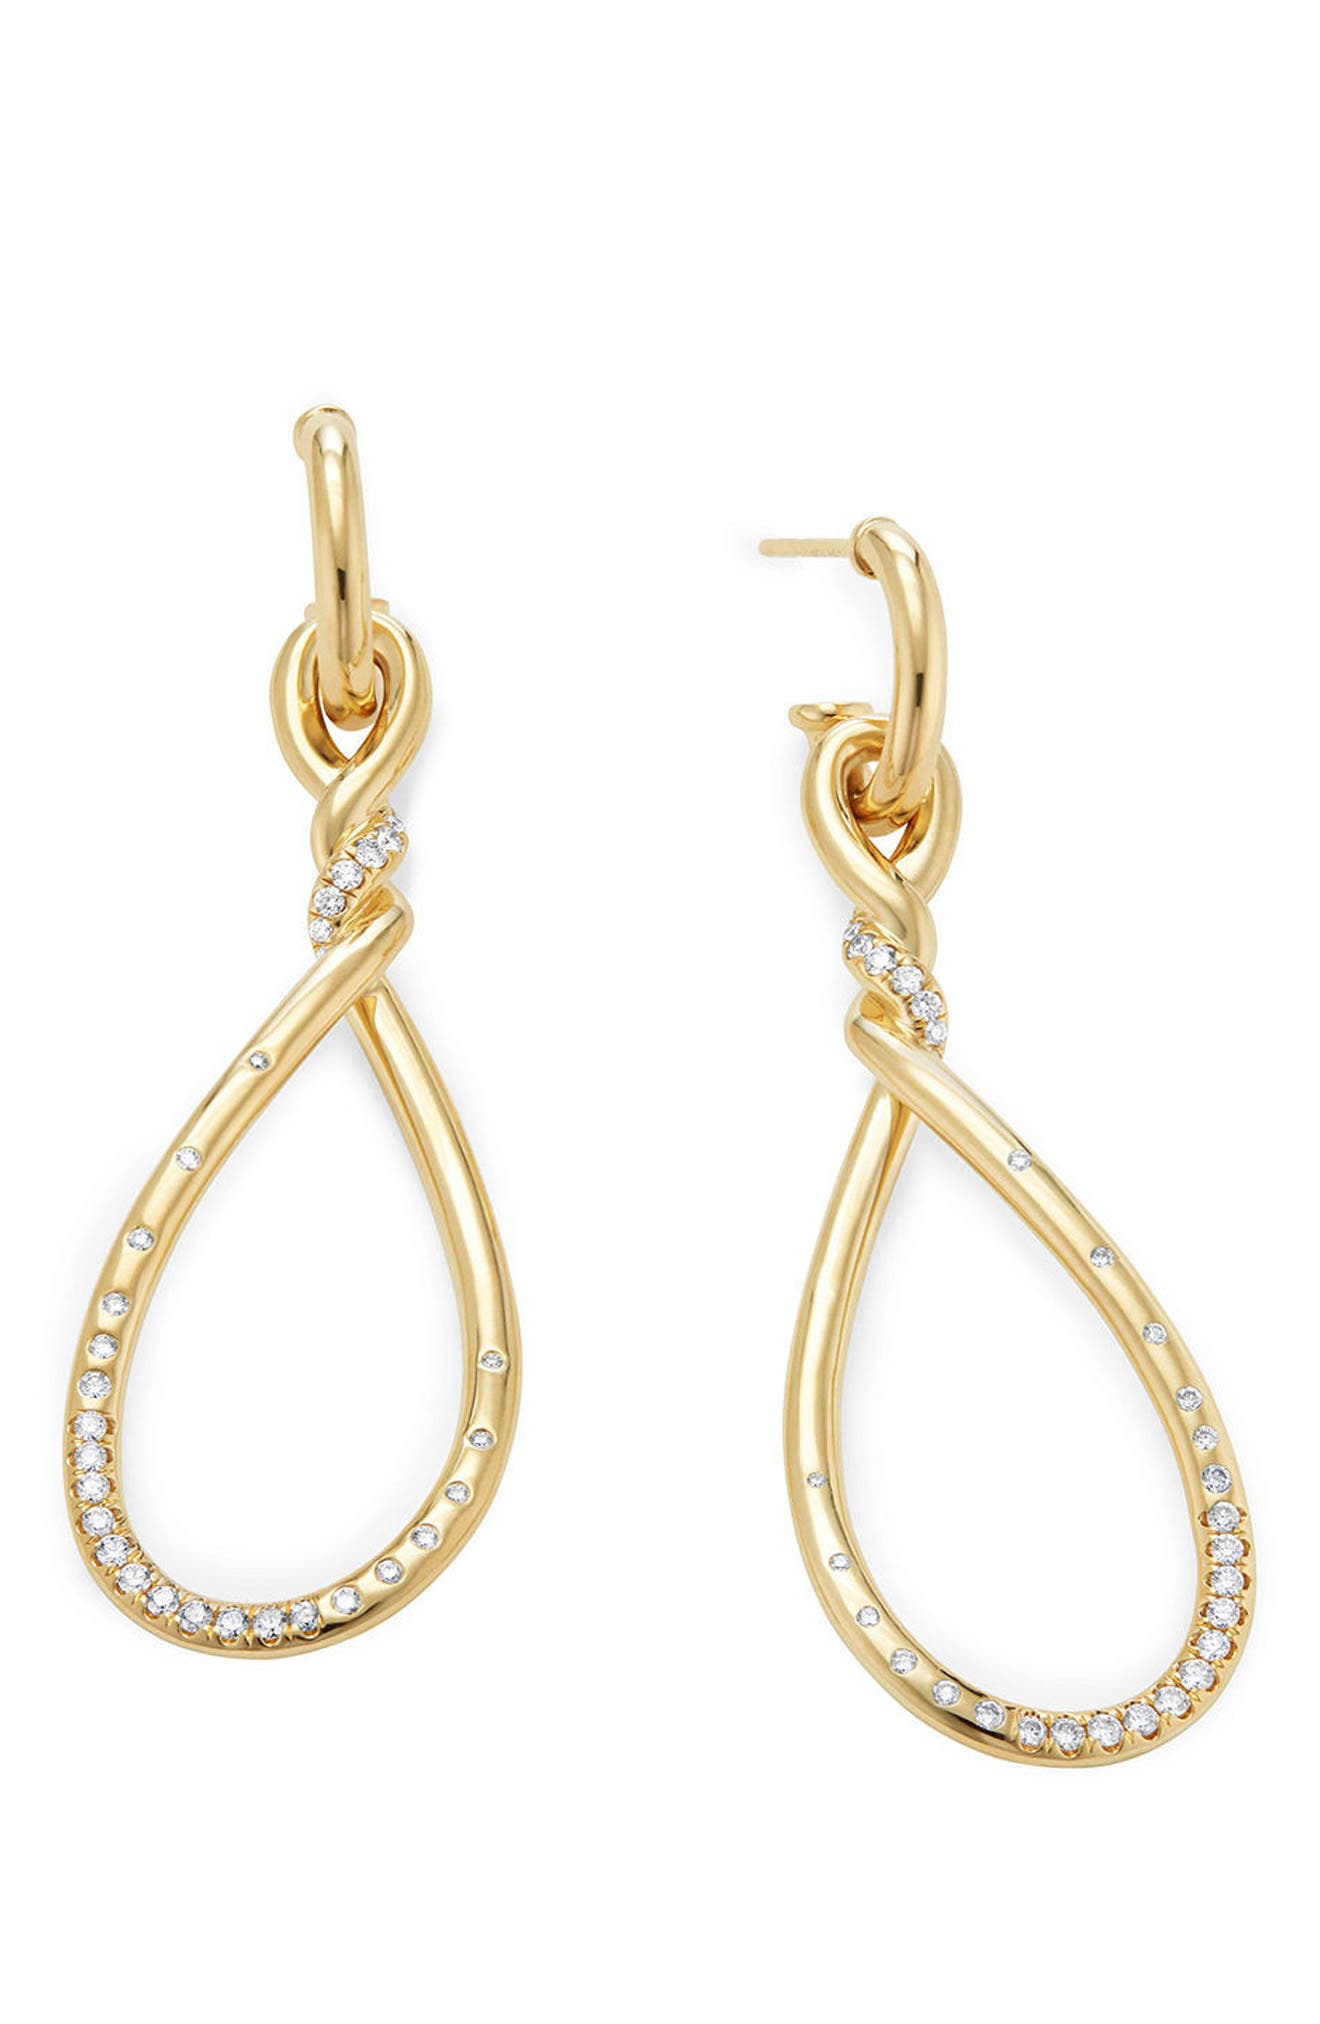 Continuance Large Drop Earrings with Diamonds in 18K Gold,                             Alternate thumbnail 3, color,                             YELLOW GOLD